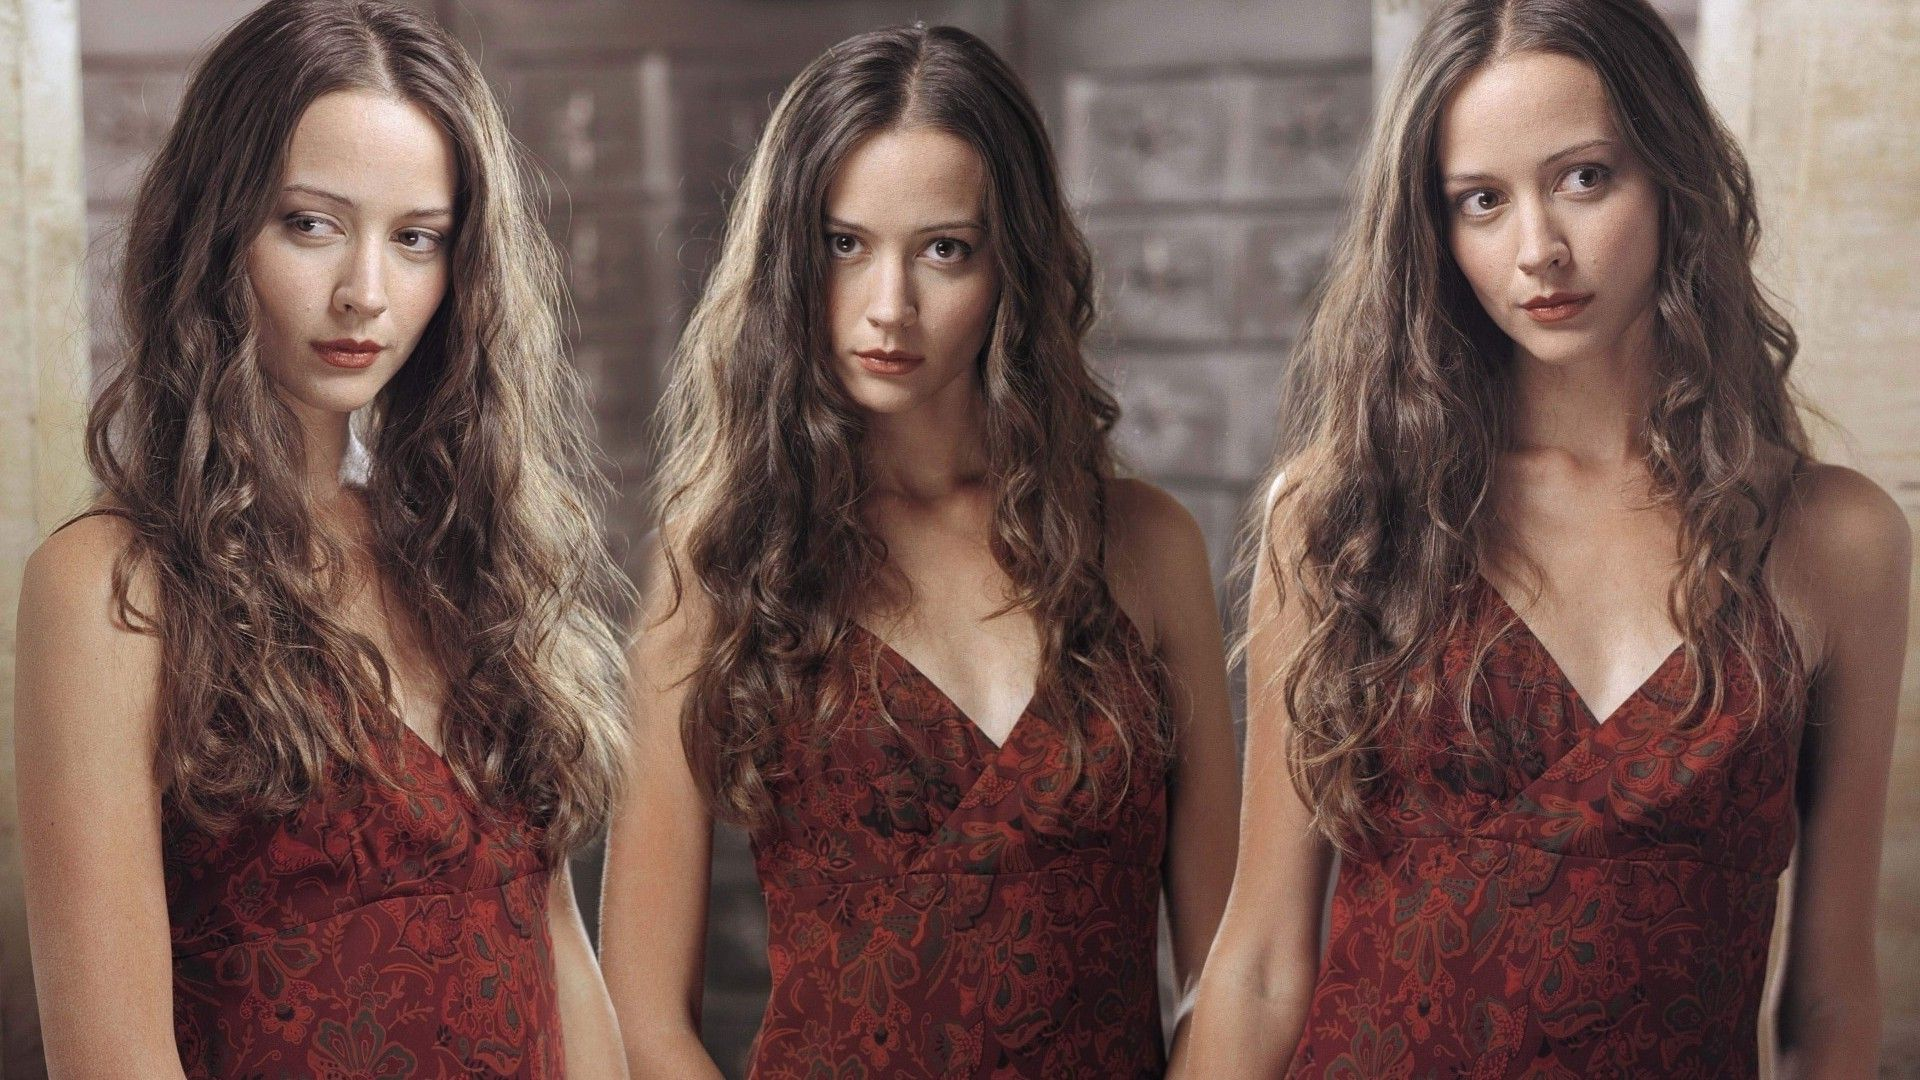 1920x1080 - Amy Acker Wallpapers 32